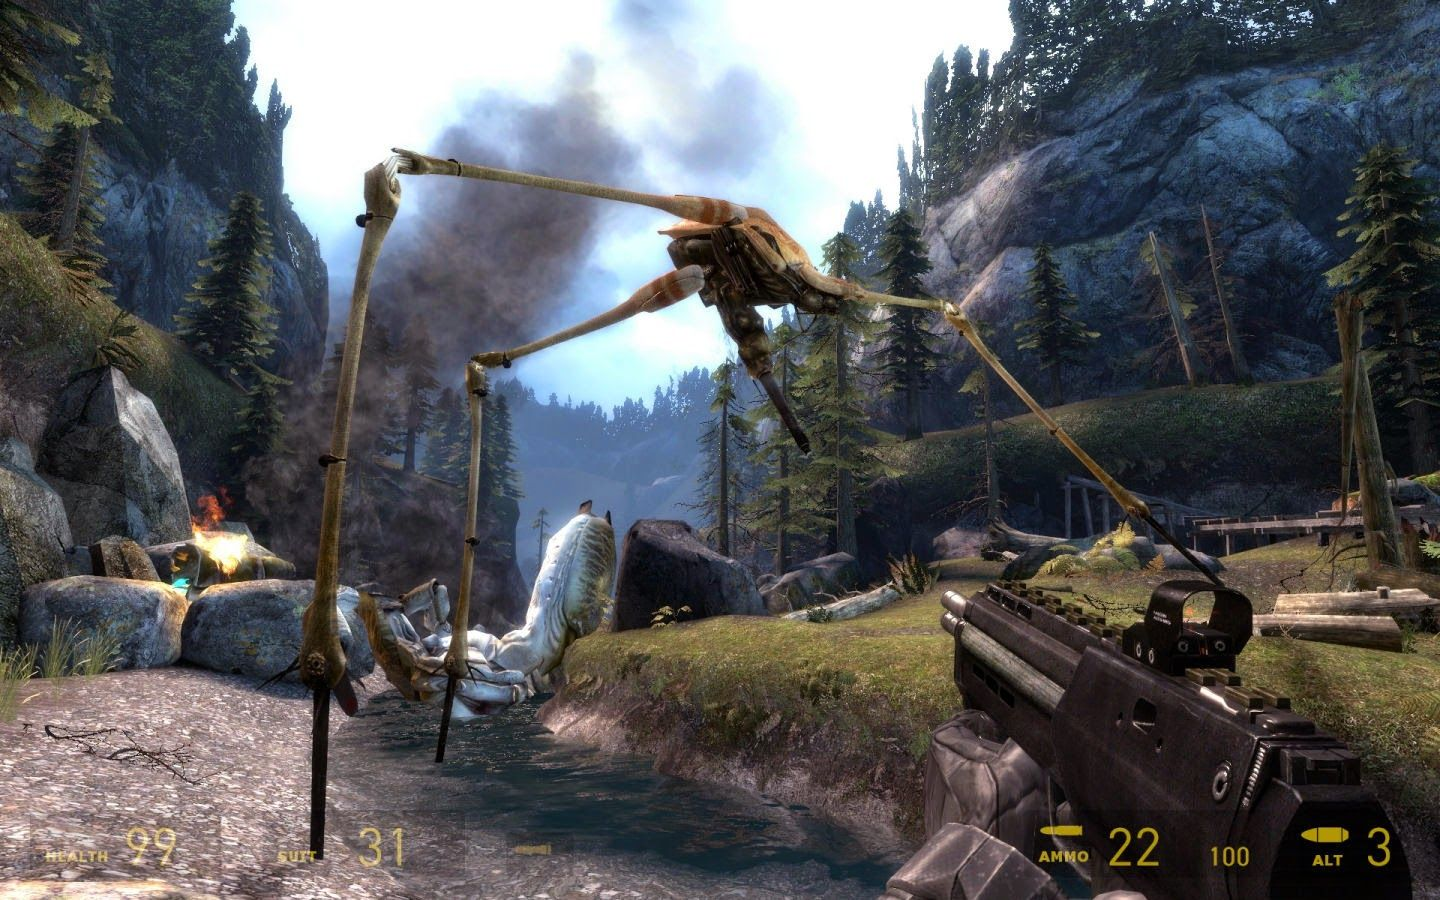 Download Half Life 3 PC Game for Free | PC-Games | Pc ...